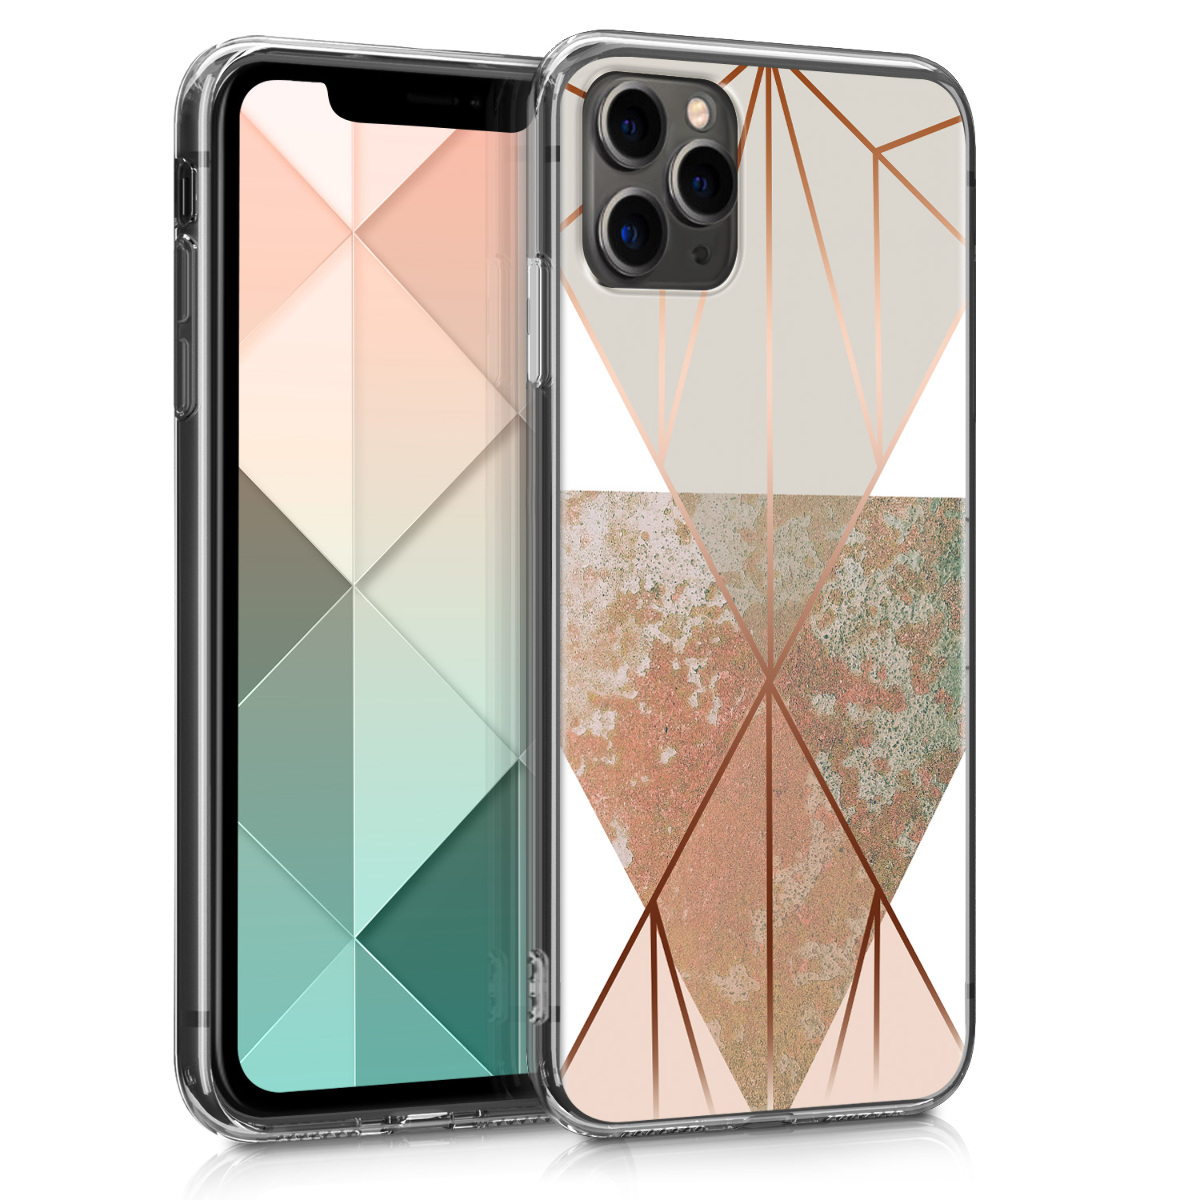 KW Θήκη Σιλικόνης Apple iPhone 11 Pro Max - Crystal Clear - Beige / Rose Gold / White (49786.04)